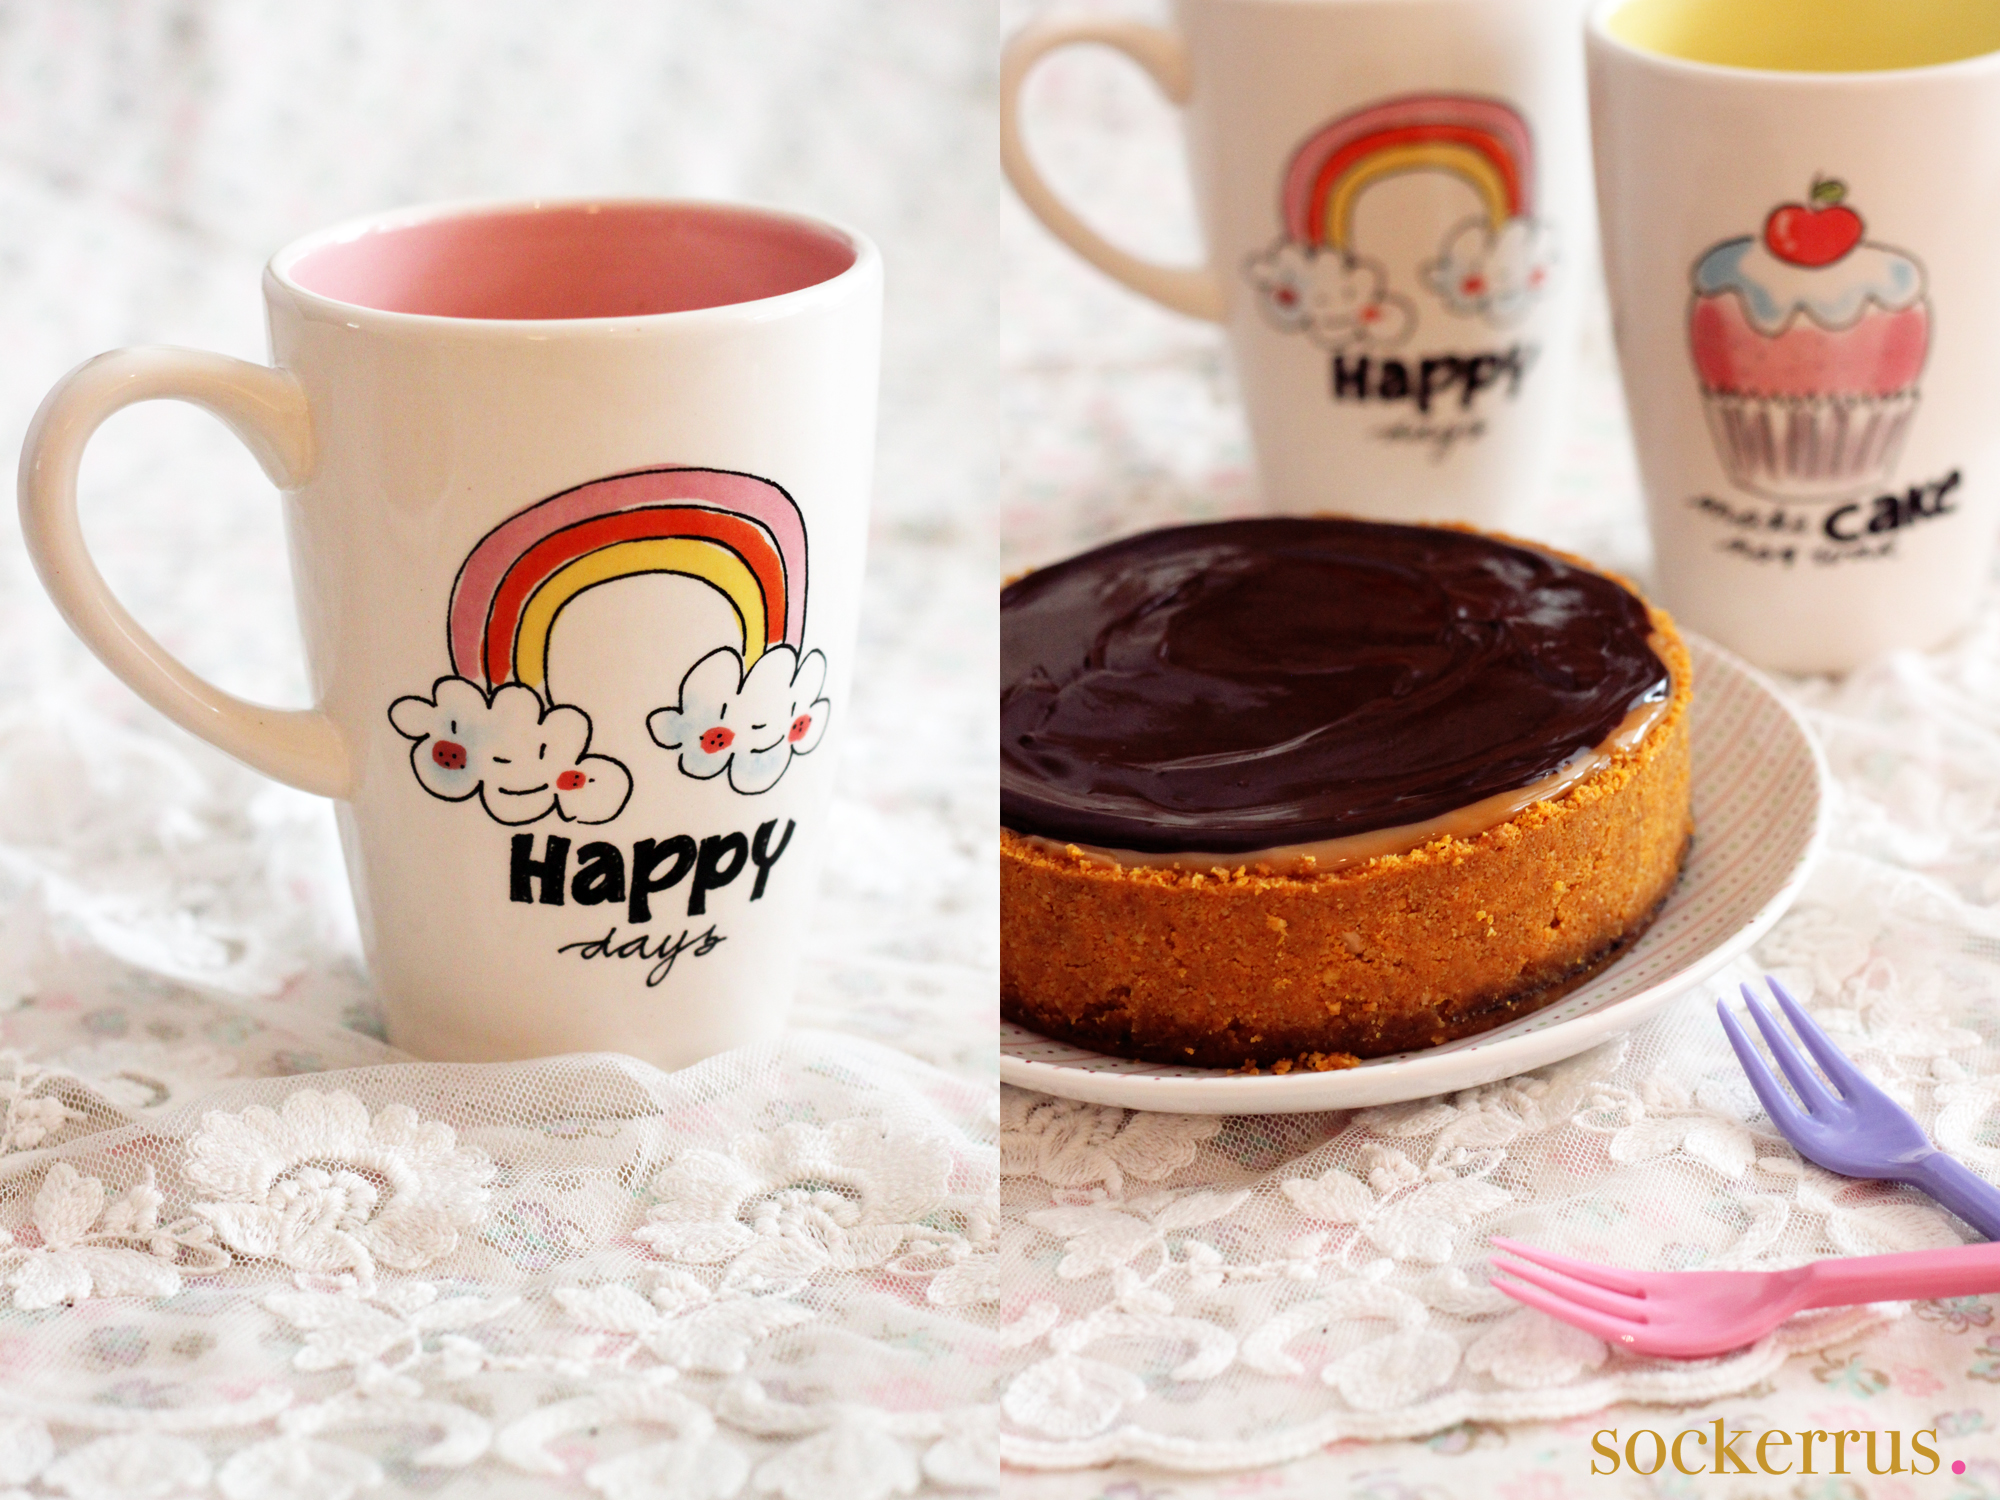 Chocolate Chili Cheesecake blonde mugs